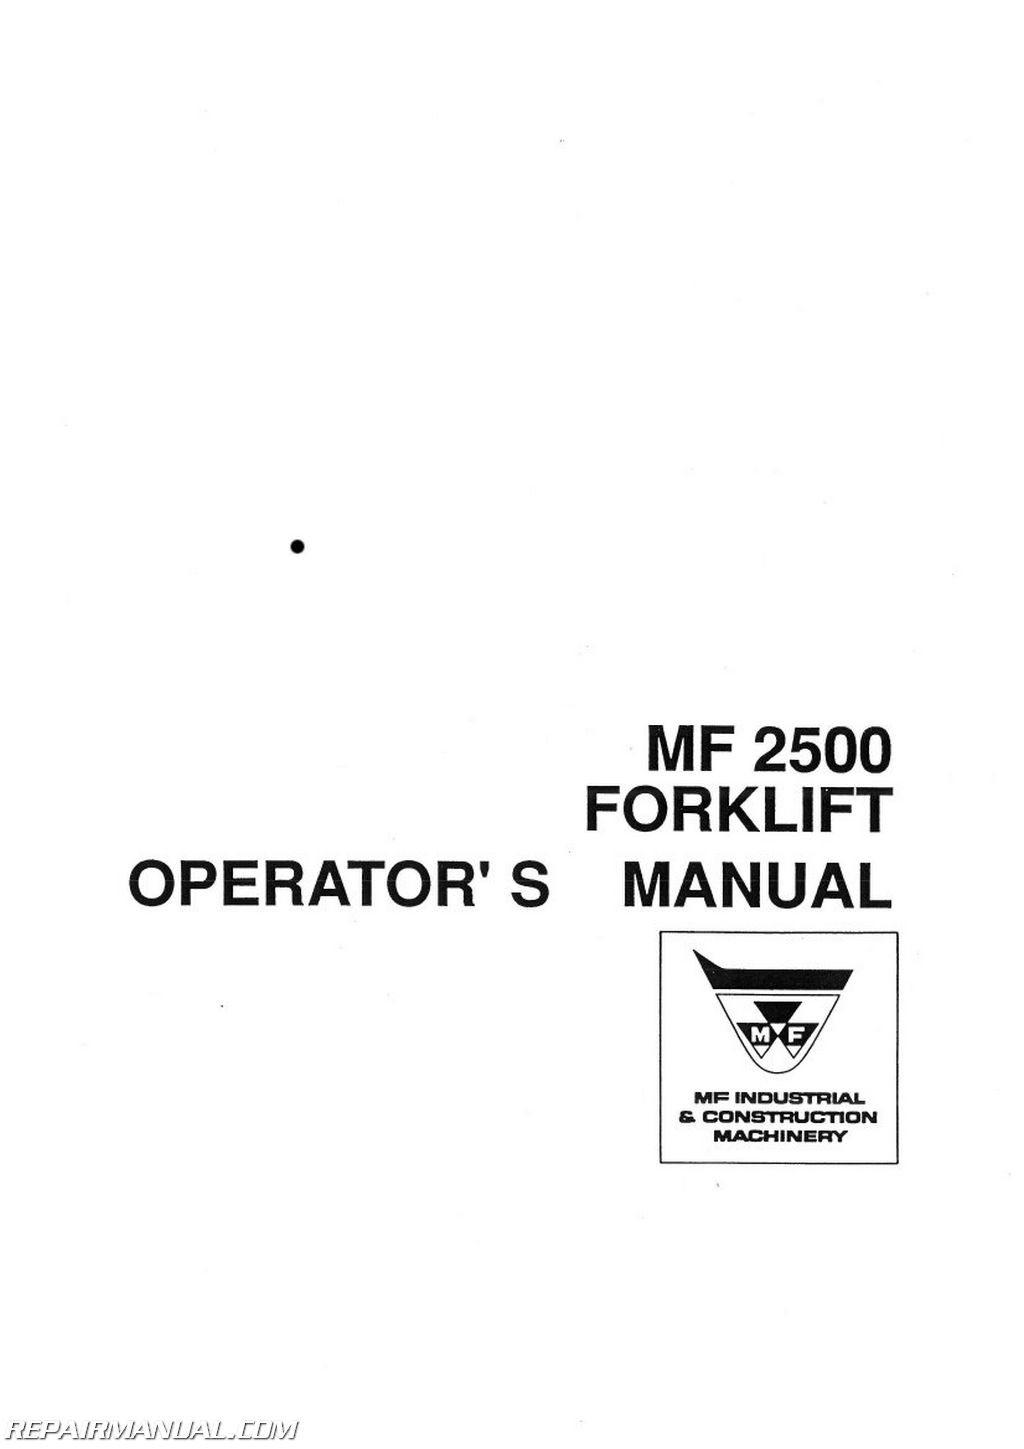 Massey Ferguson MF2500 Fork Lift Operators Manual